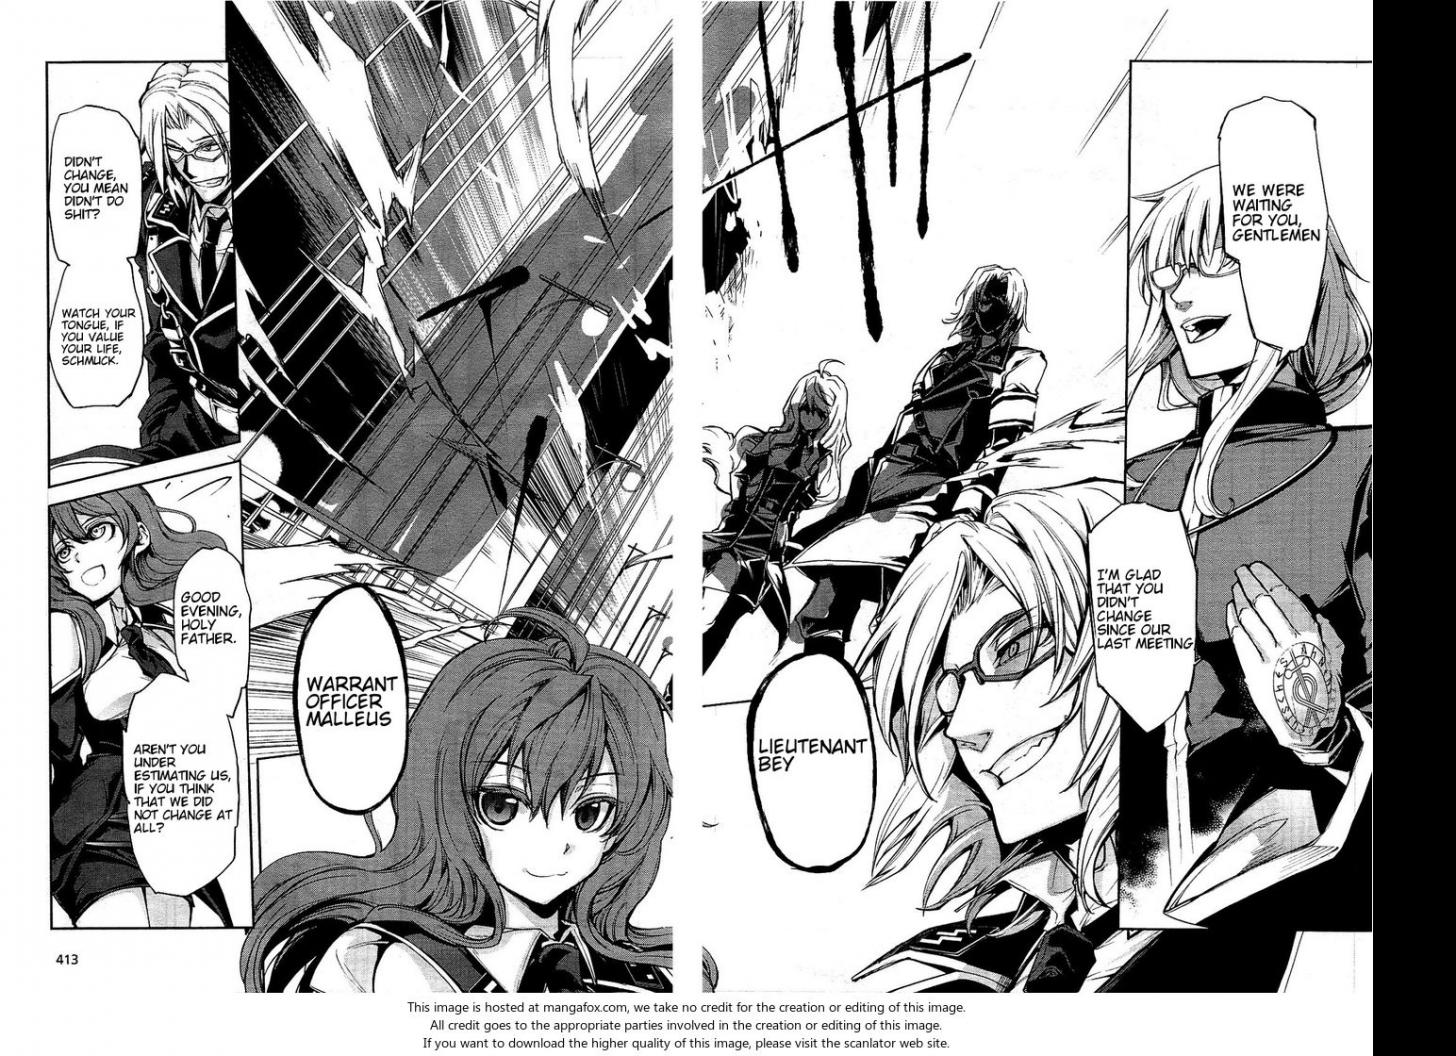 Dies Irae - Amantes Amentes - Chapter 1